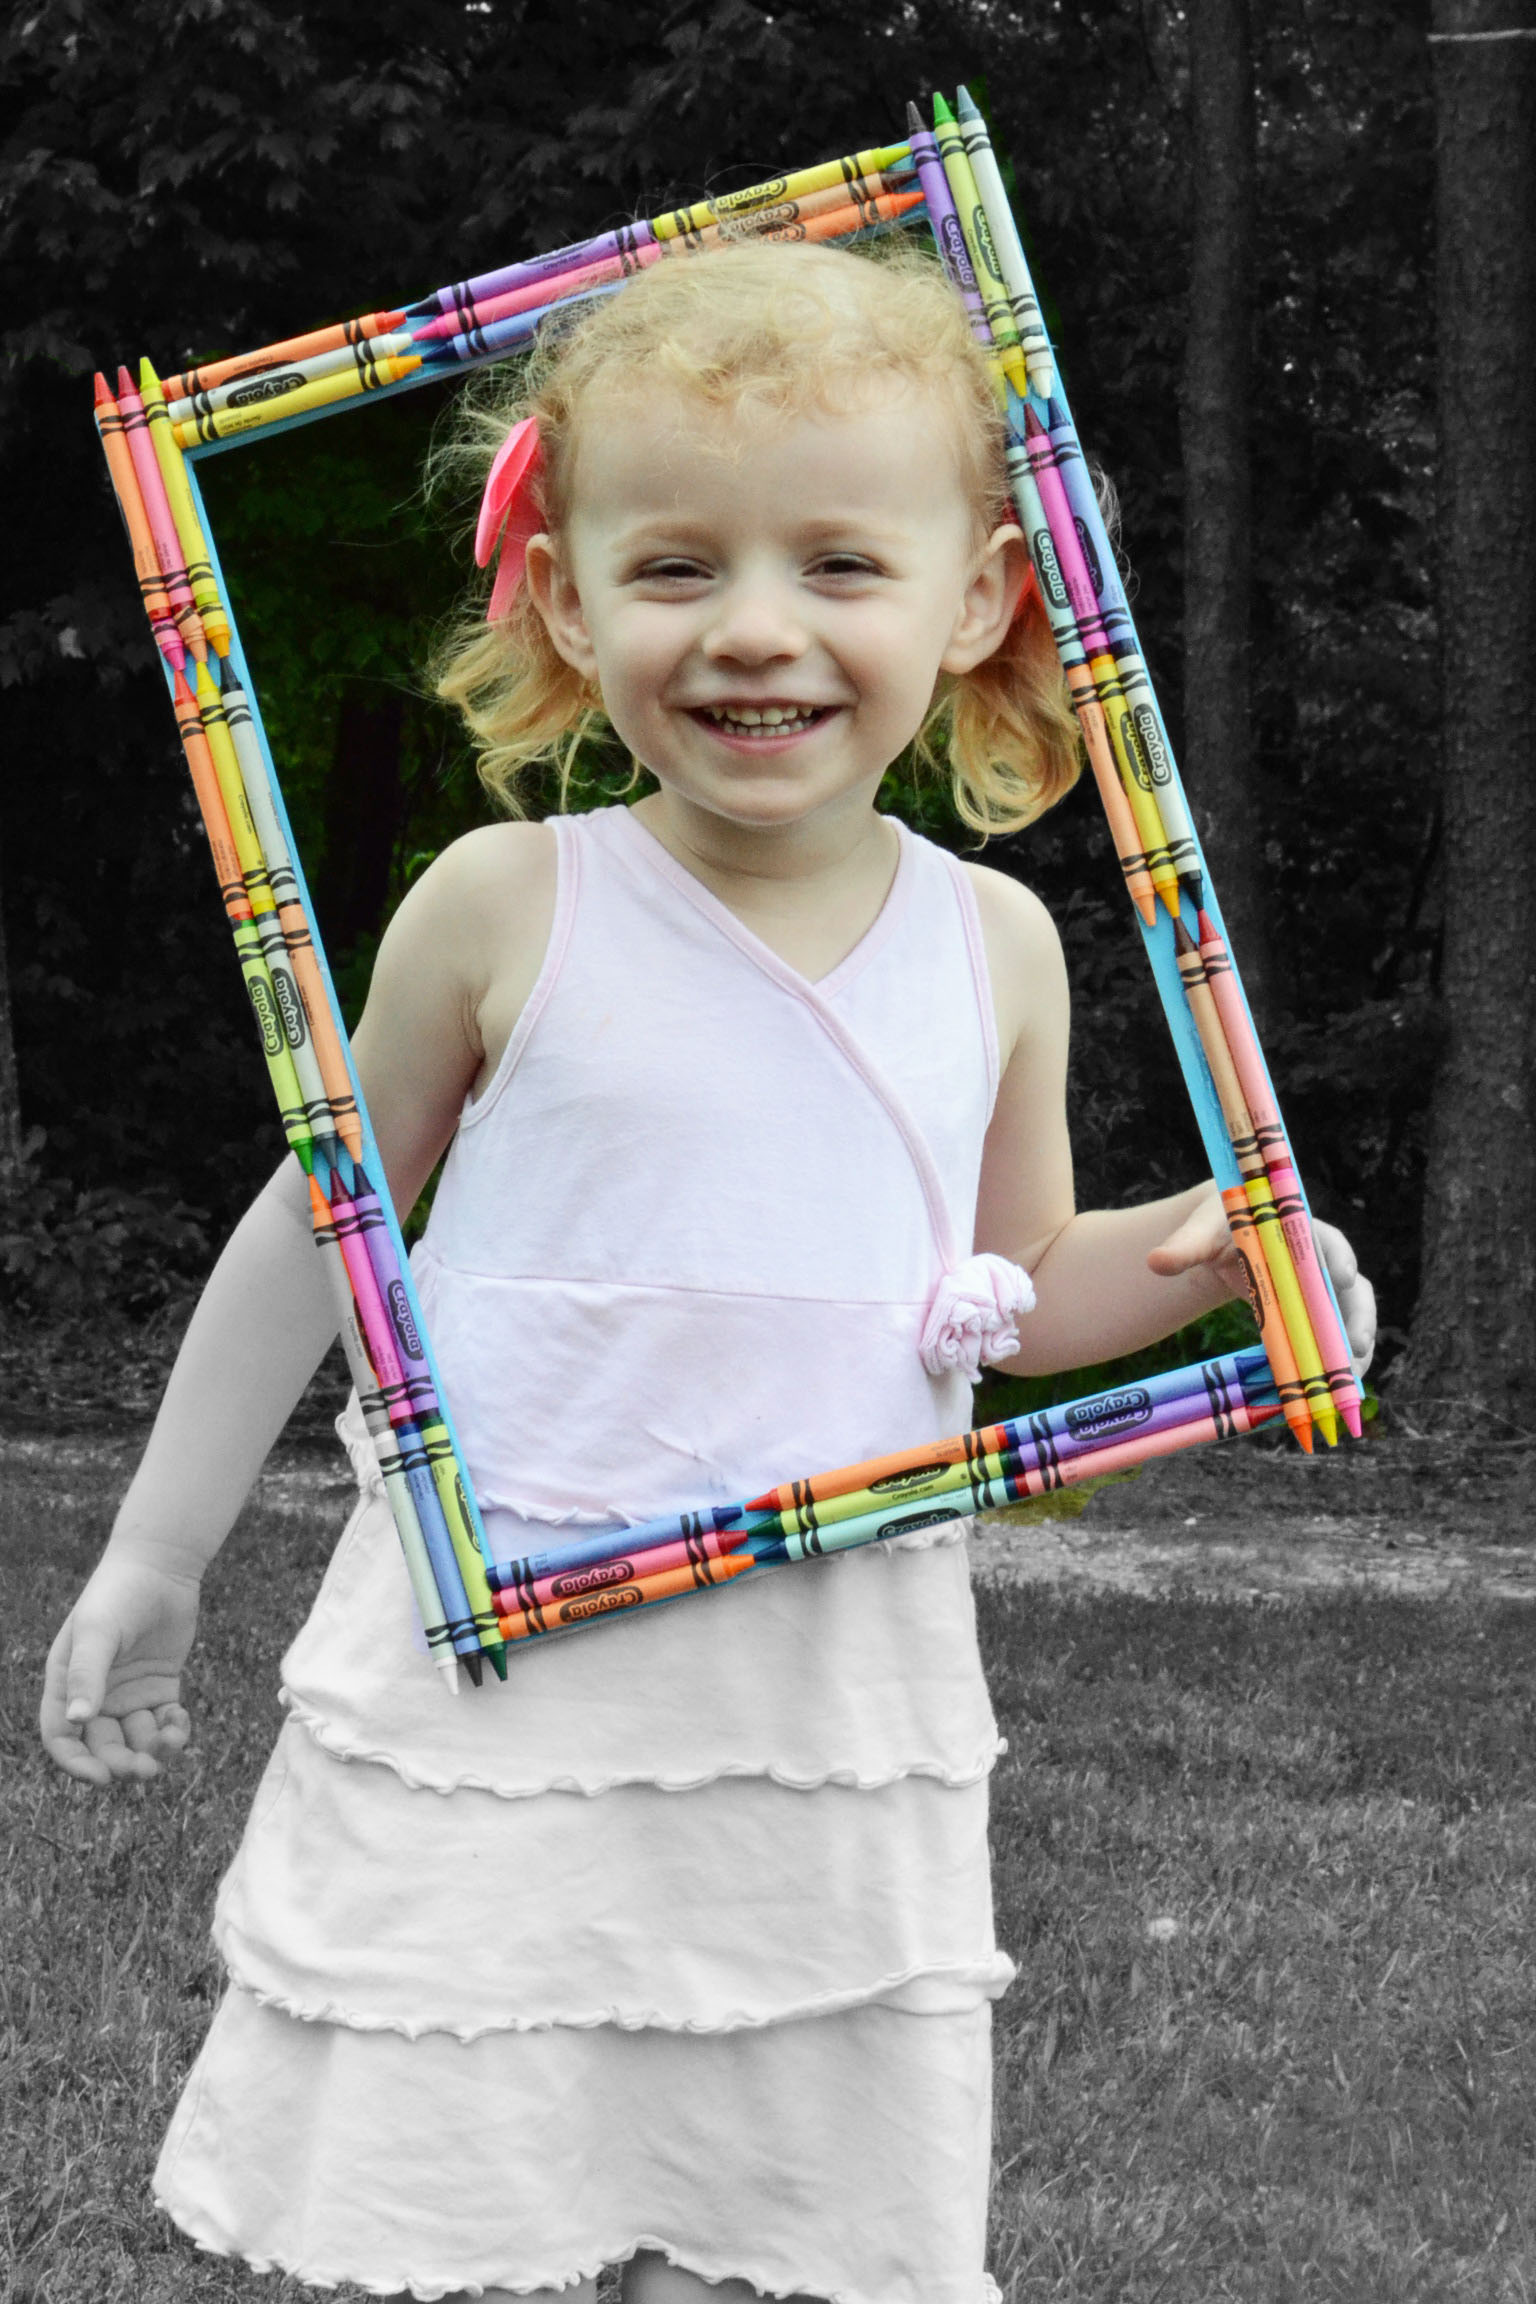 crayon photo frame fun family crafts